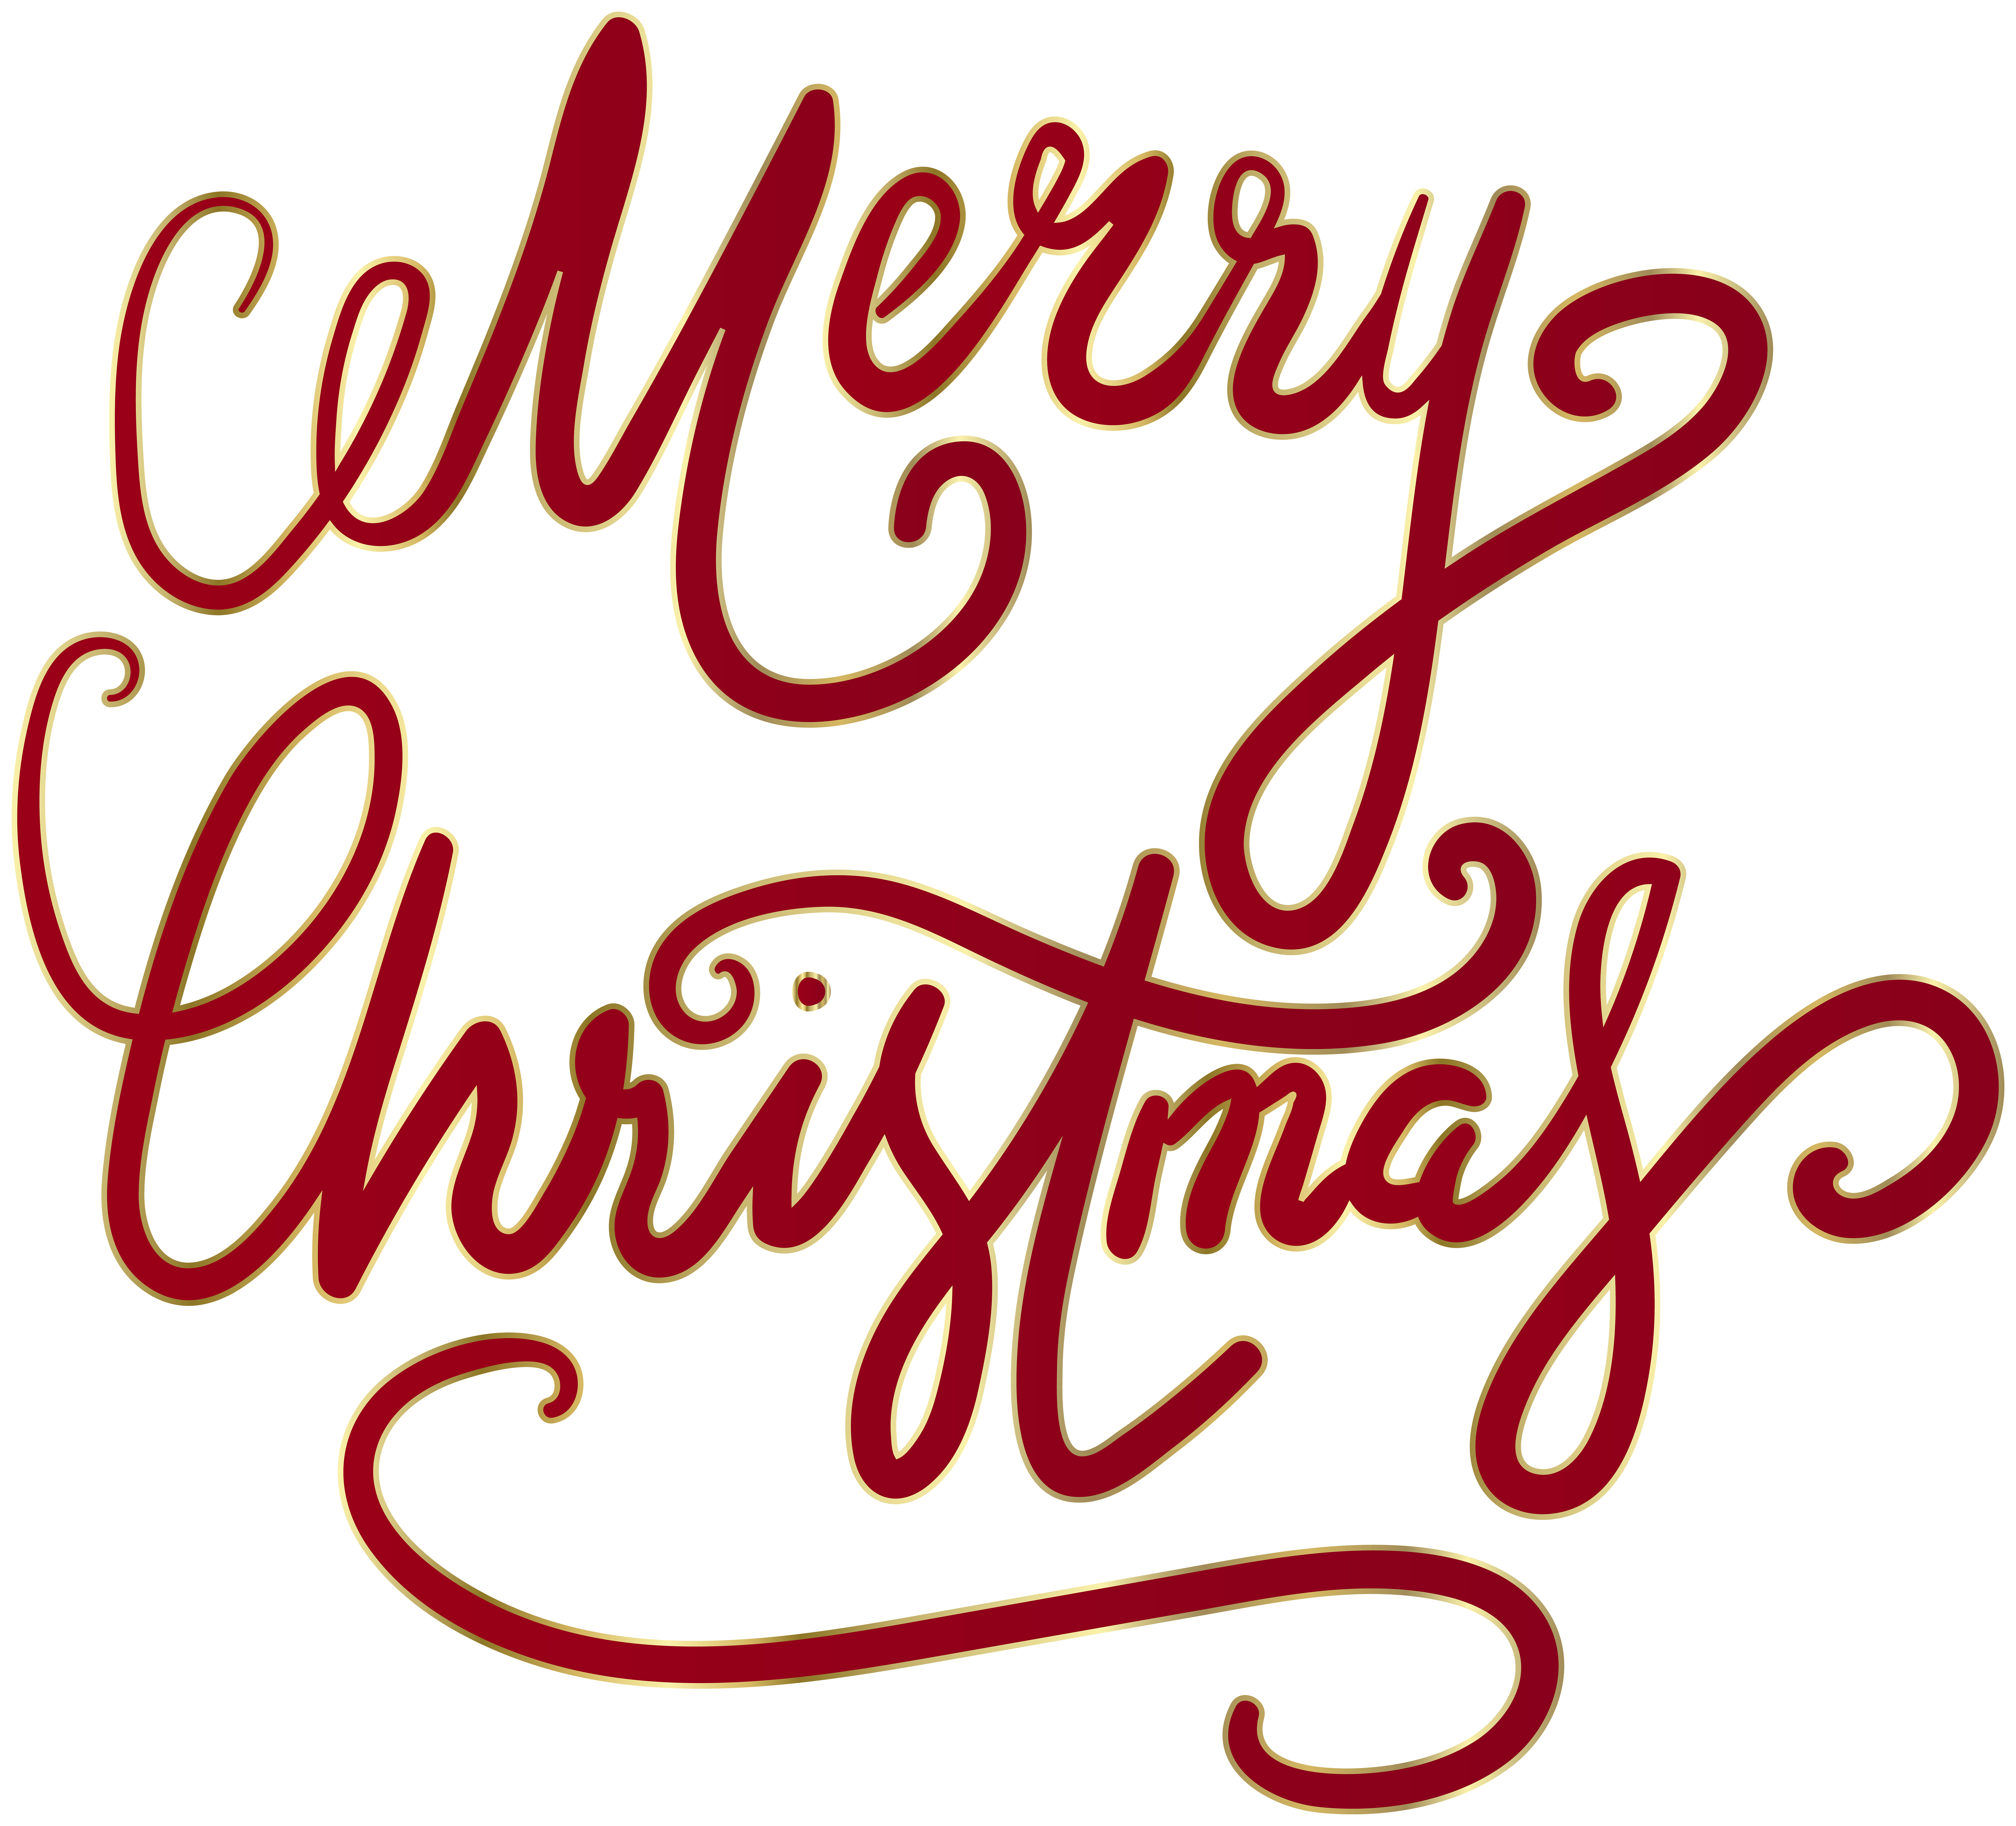 Merry Christmas Text Red Transparent Clipart.